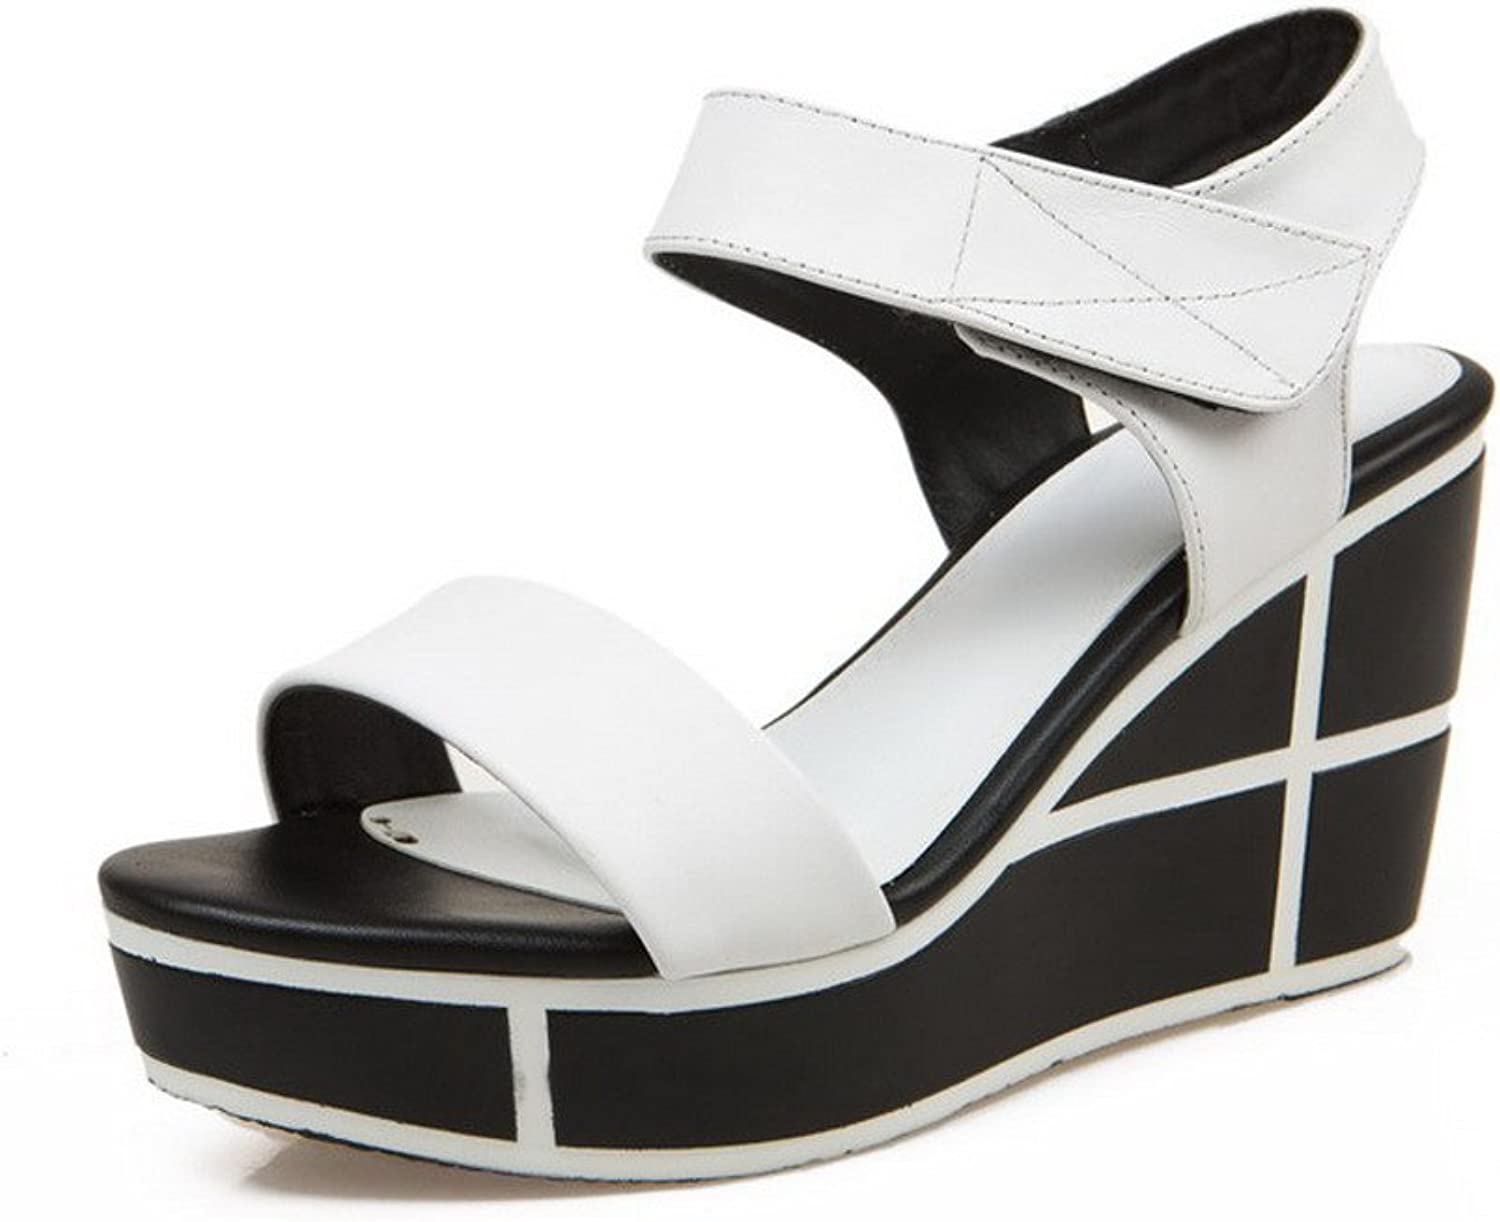 AmoonyFashion Women's Open Toe Hook-and-Loop Cow Leather Assorted color High-Heels Sandals